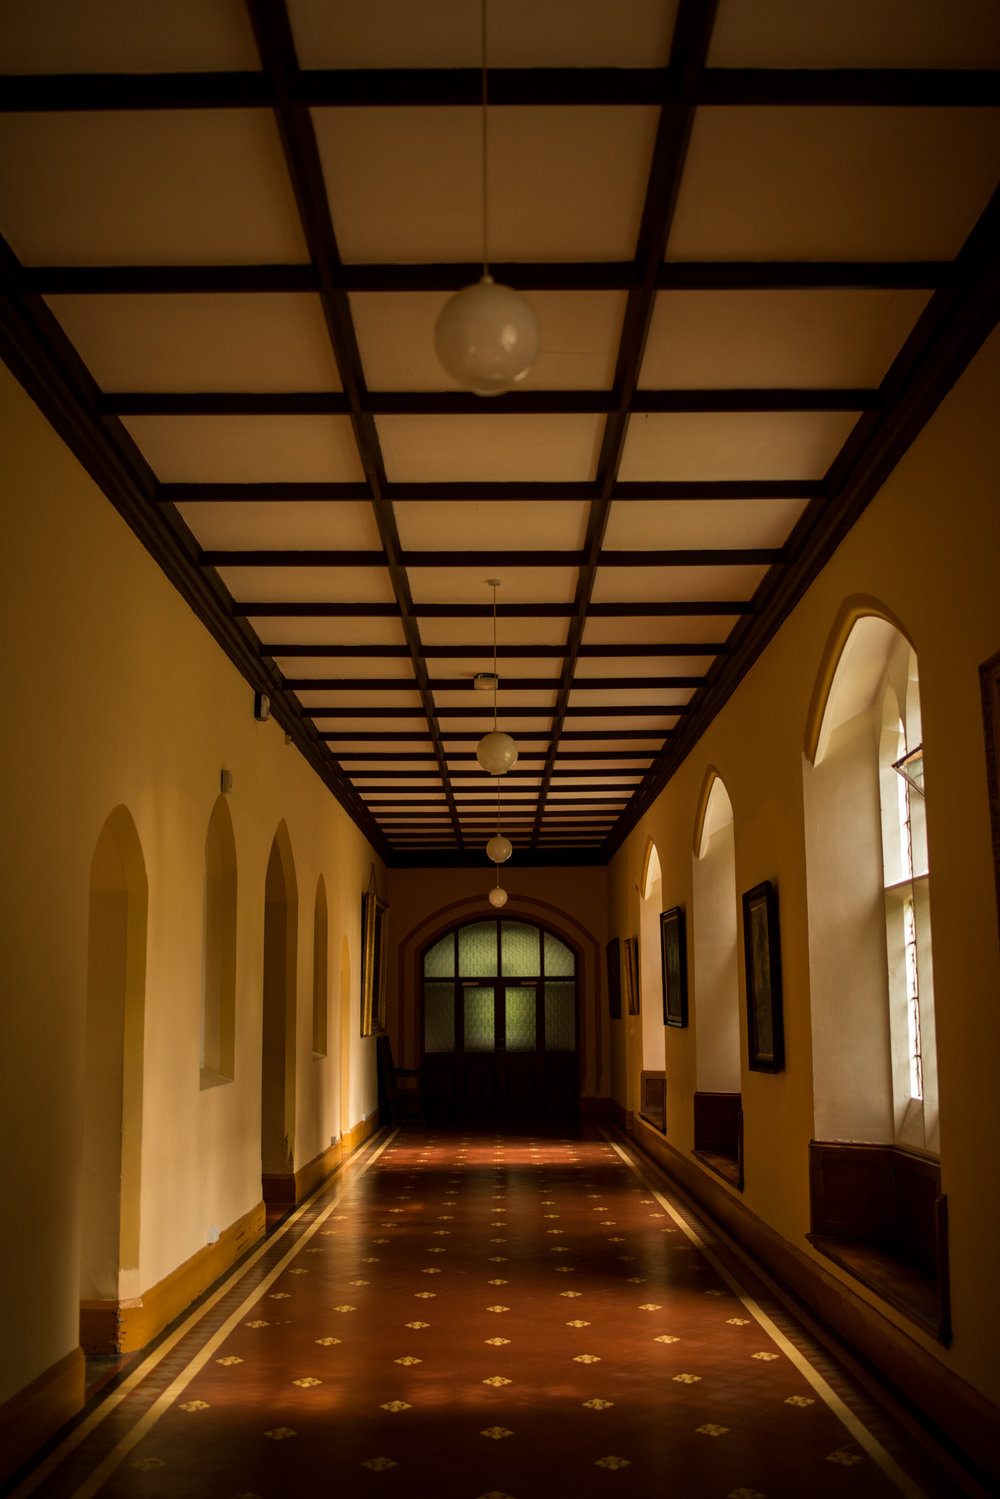 The hallway to the Church